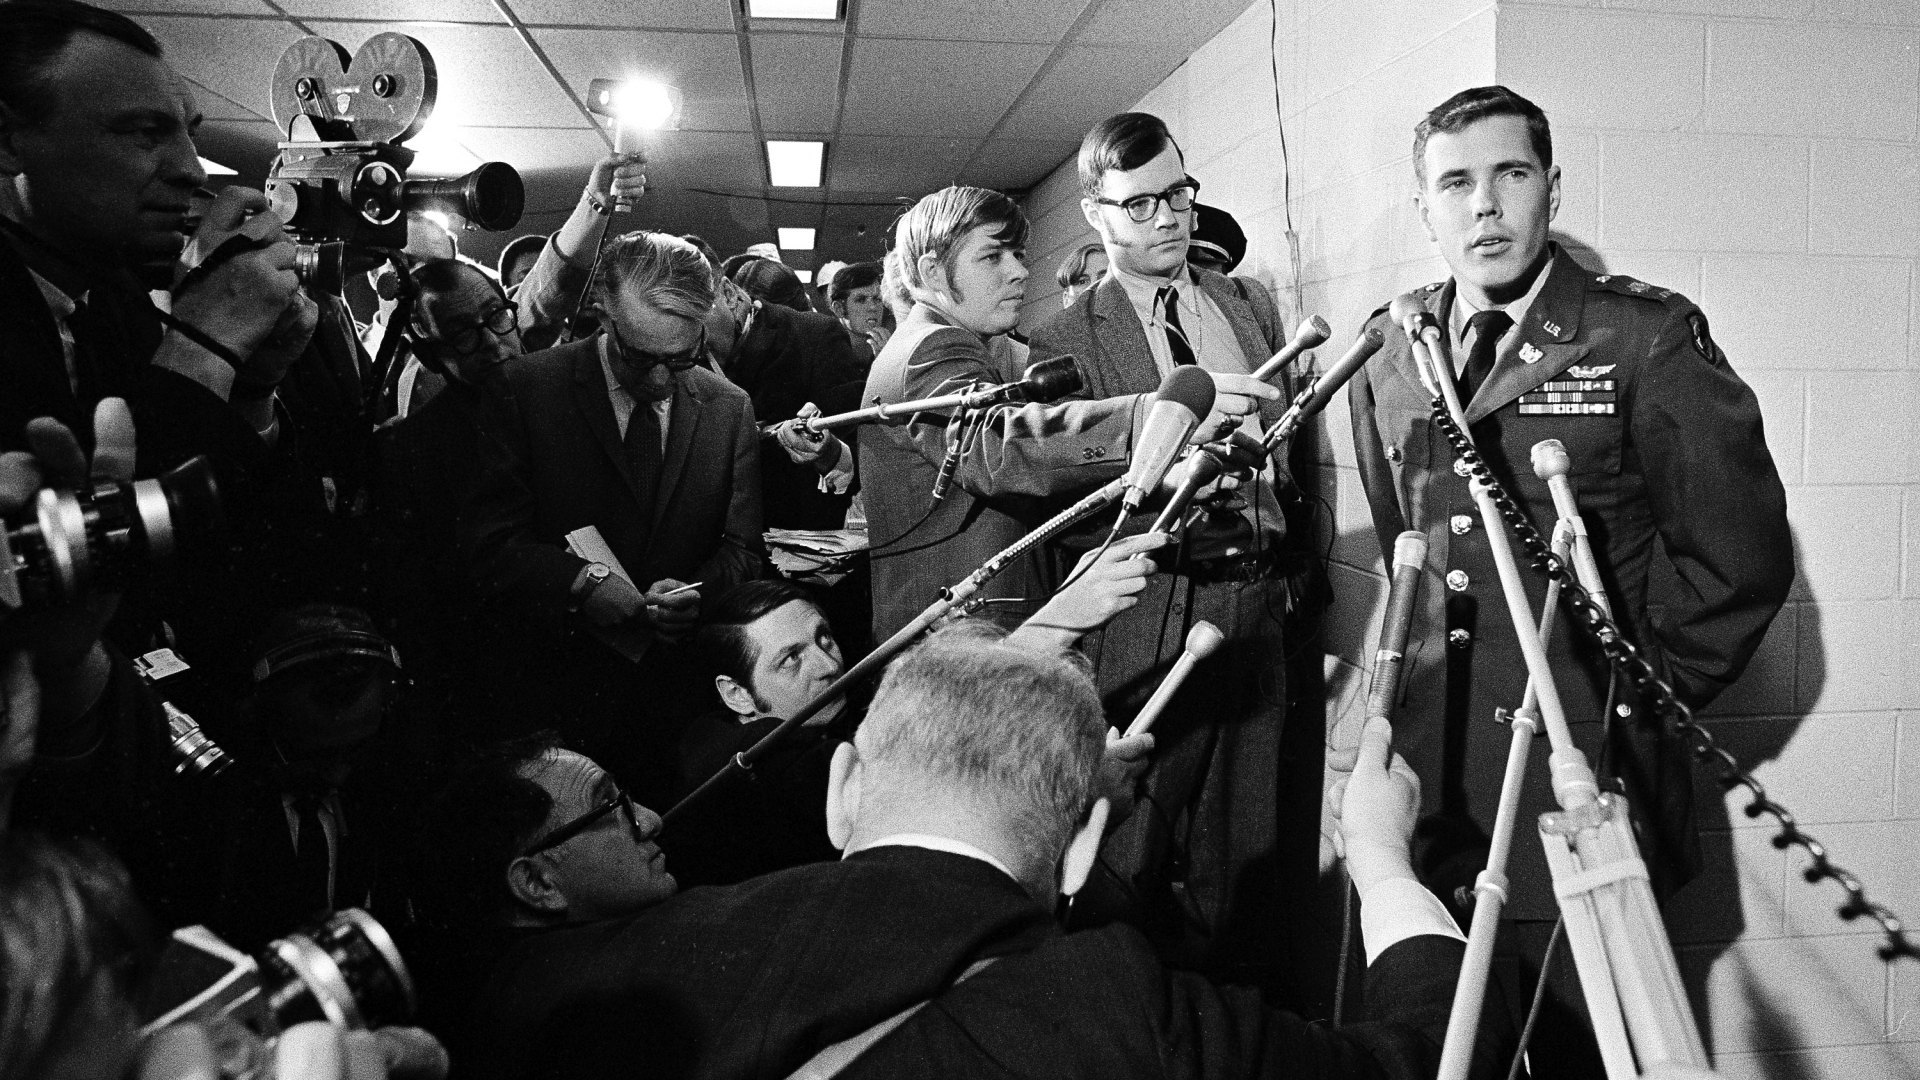 Hugh C. Thompson Army helicopter pilot, meeting with newsmen after appearing before an Army hearing at the Pentagon into  the original investigation of the massacre at My Lai, 1969. (Credit: AP Photo)